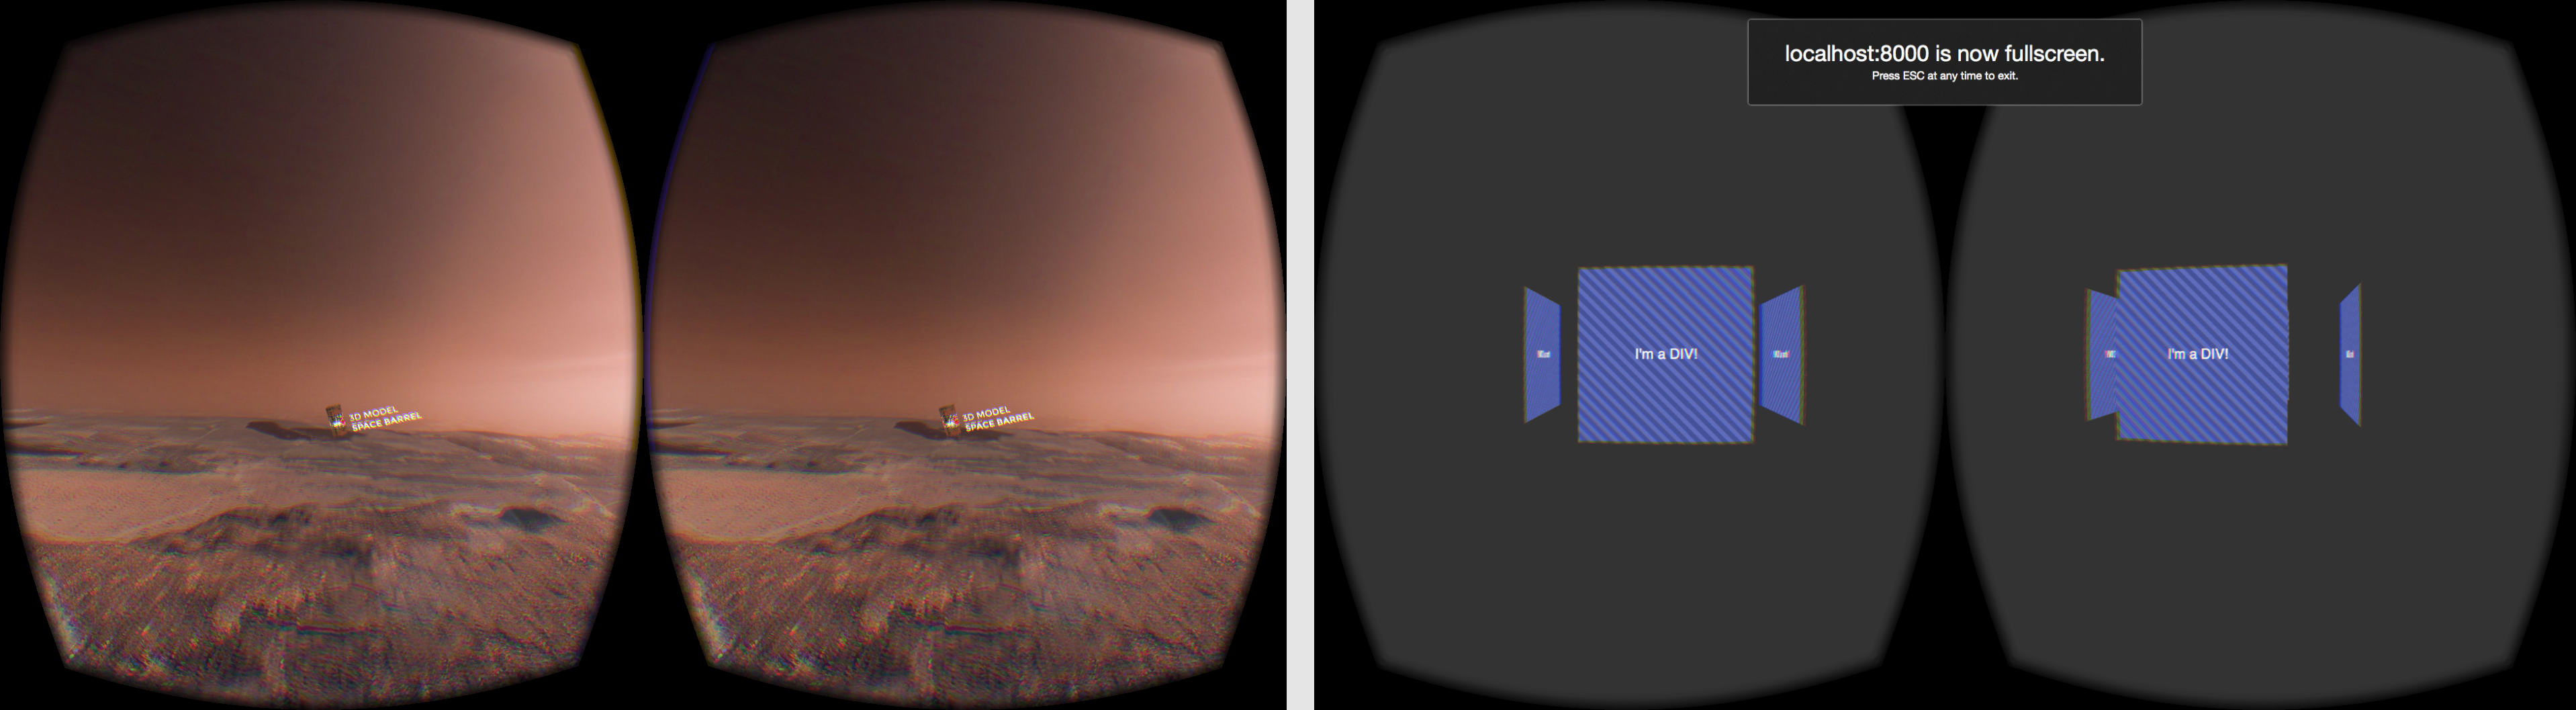 Early CSS-VR experiments showing s rendering into the Oculus Rift headset